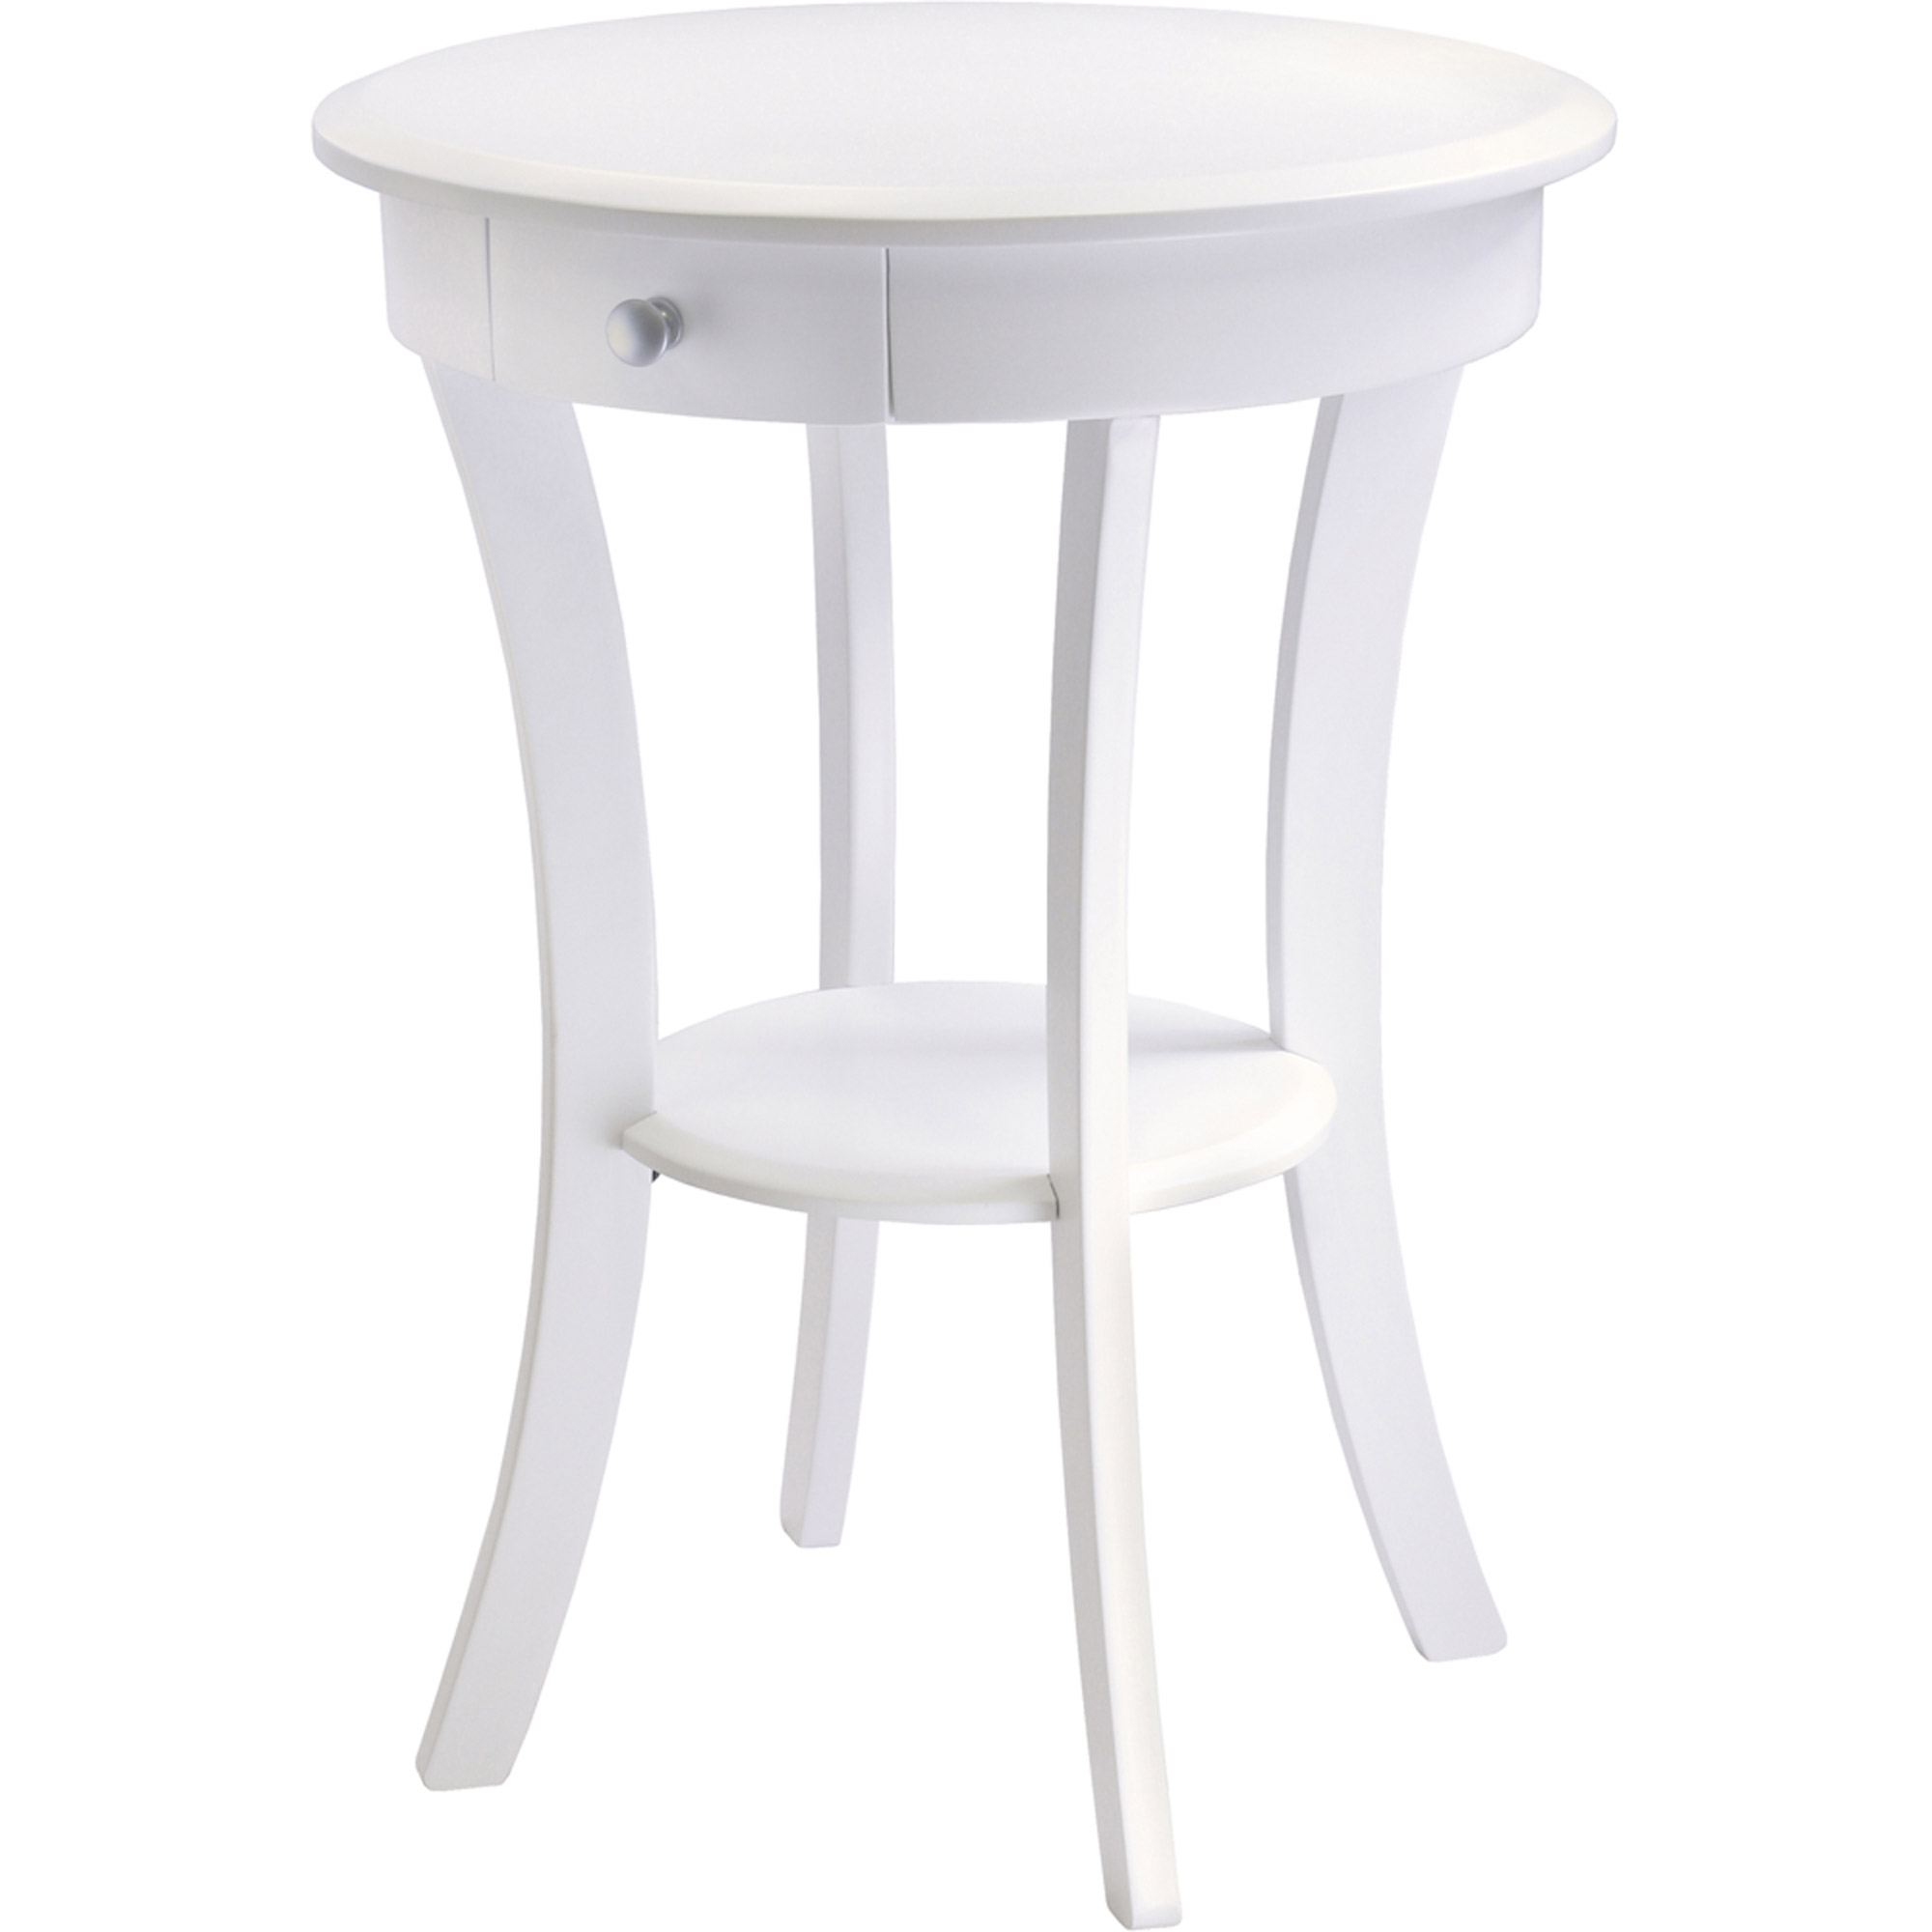 sasha round accent table white acrylic coffee square for home furniture design hampton bay patio person dining marble top bistro wooden trestle nesting tables living spaces end